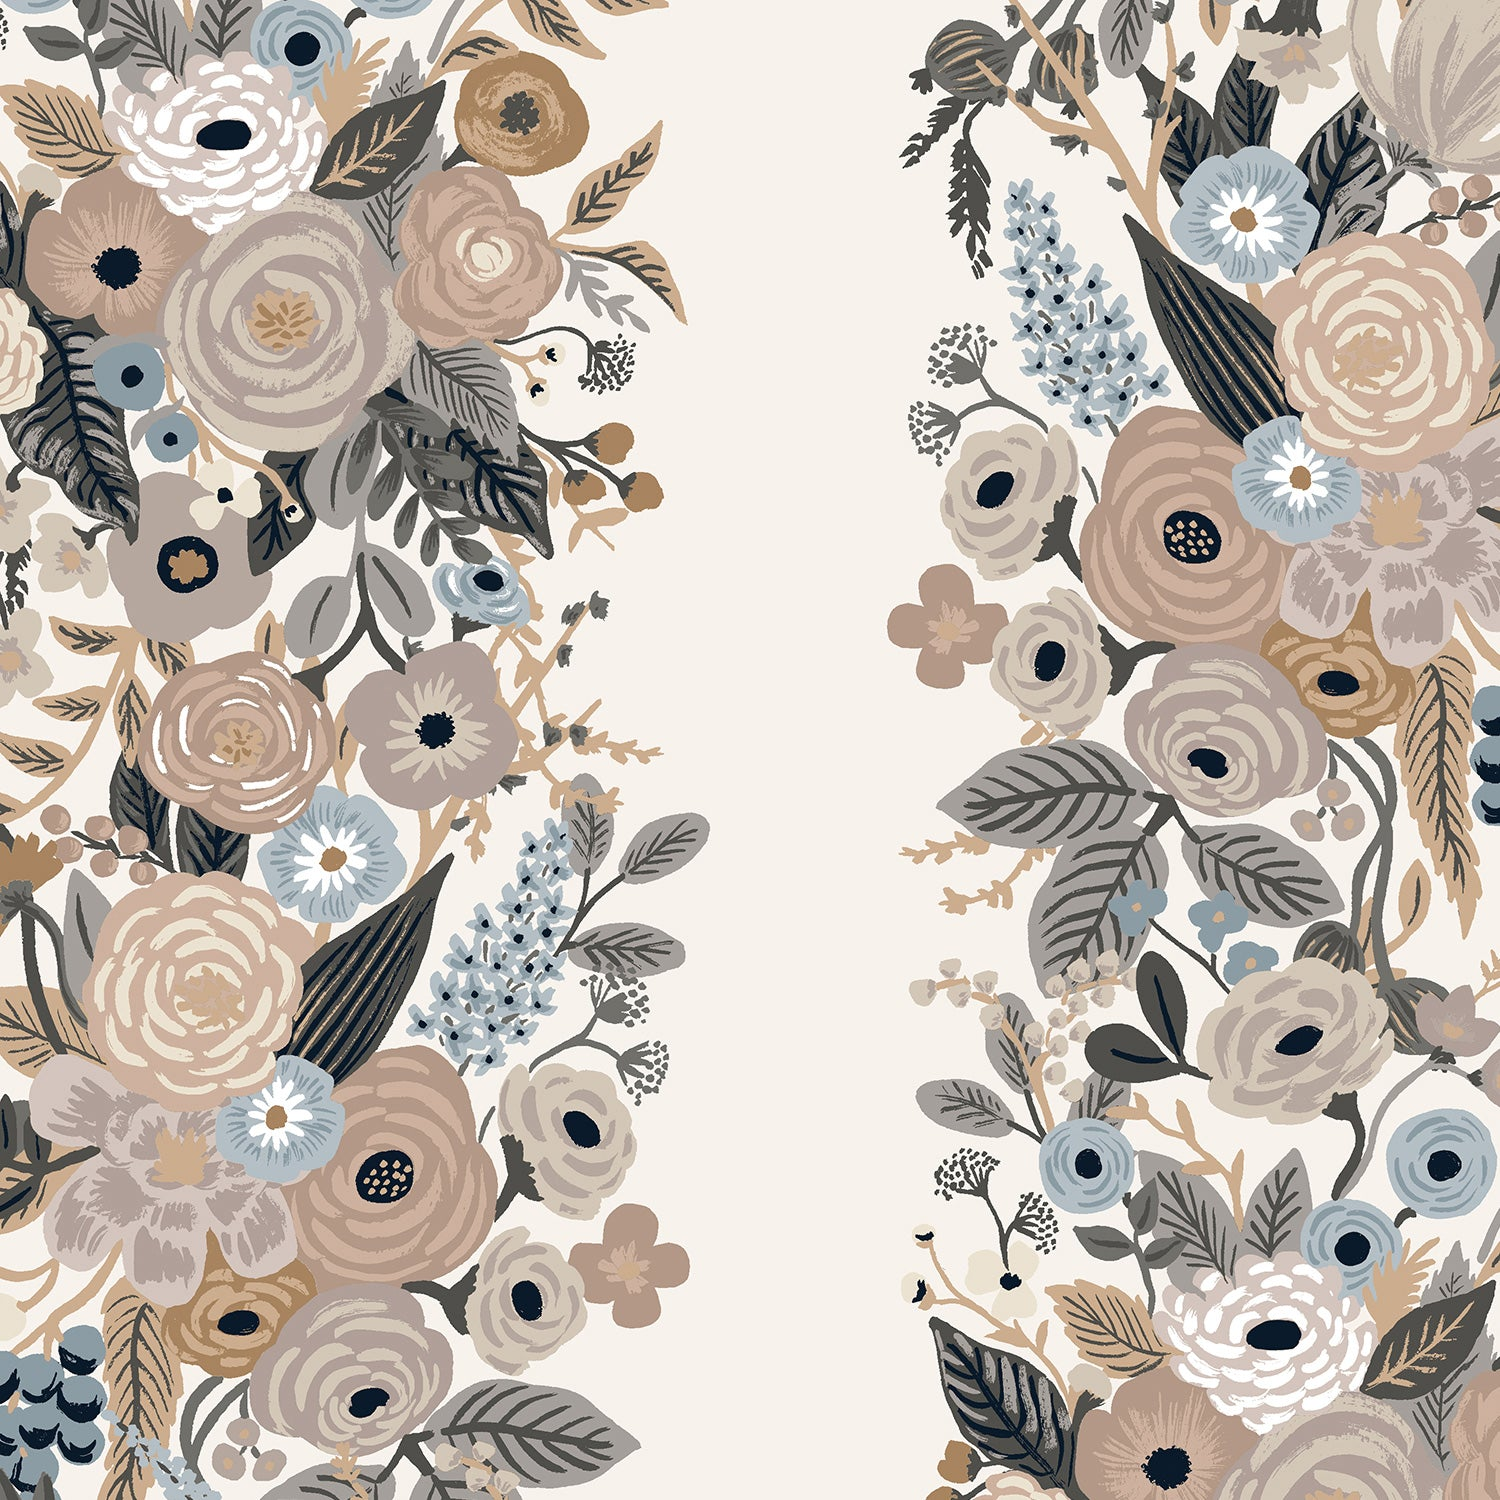 Manufacturer: Cotton and Steel Designer: Rifle Paper Co. Collection: Garden Party Print Name: Vines in Linen Material: 100% Cotton  Weight: Quilting  SKU: RP101-LM5 Width: 44 inches